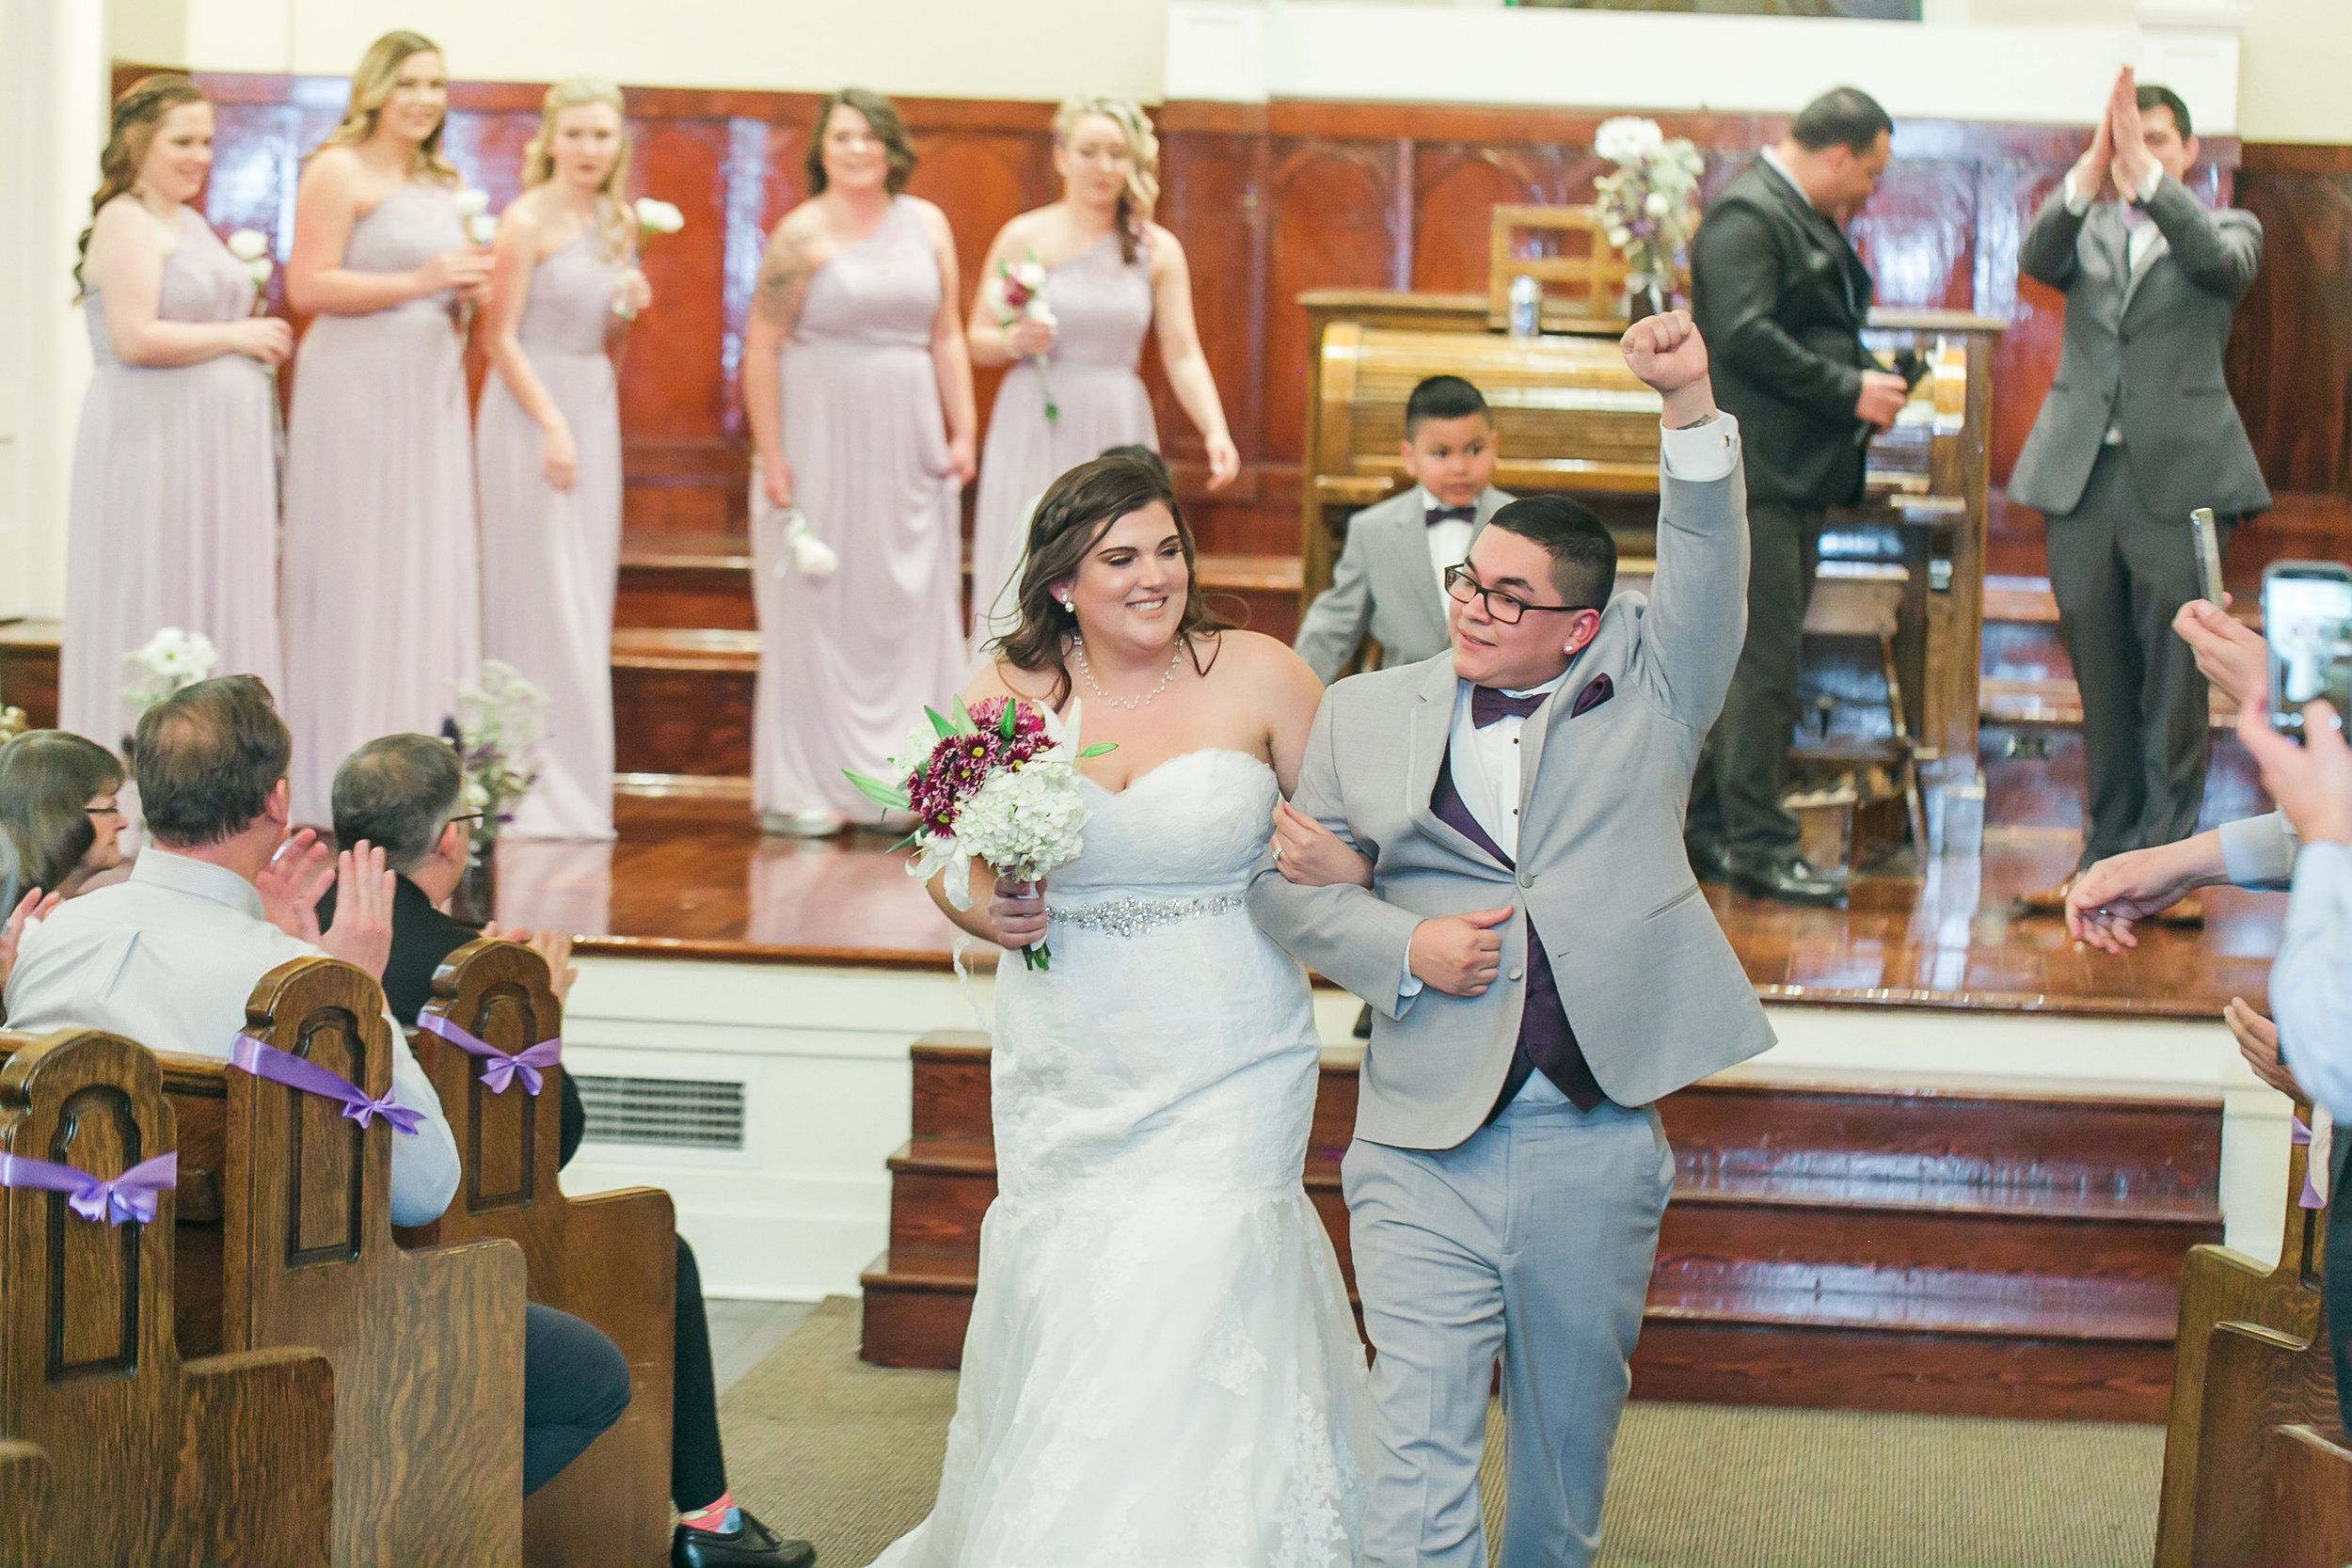 Celebrate! Friday weddings are here! Photo by Lloyd Photographers